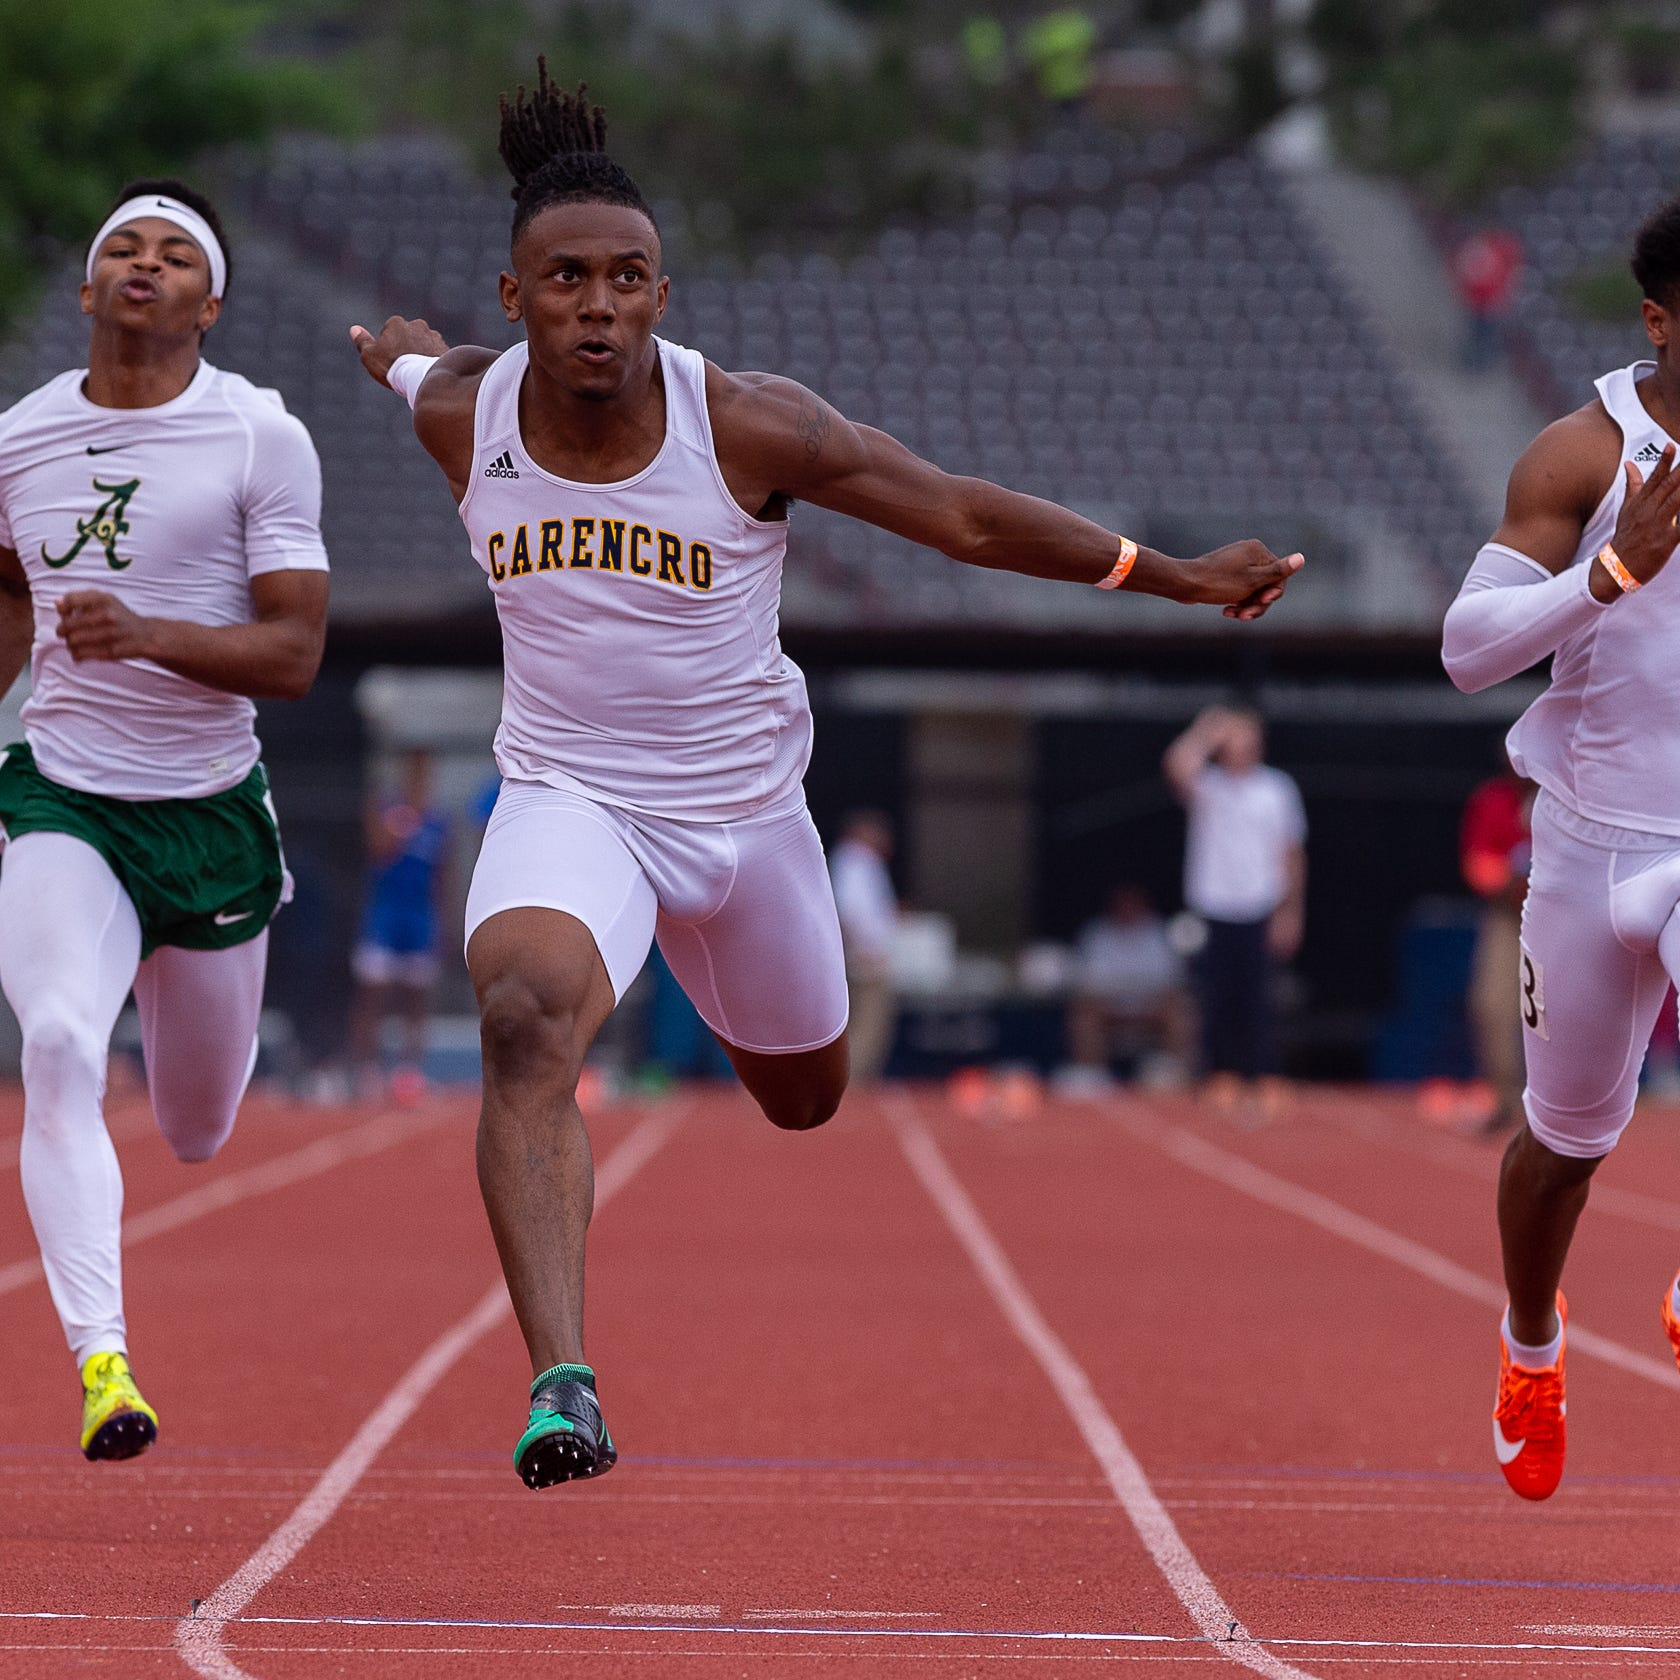 Golden Bears good as gold again in Class 4A track championship